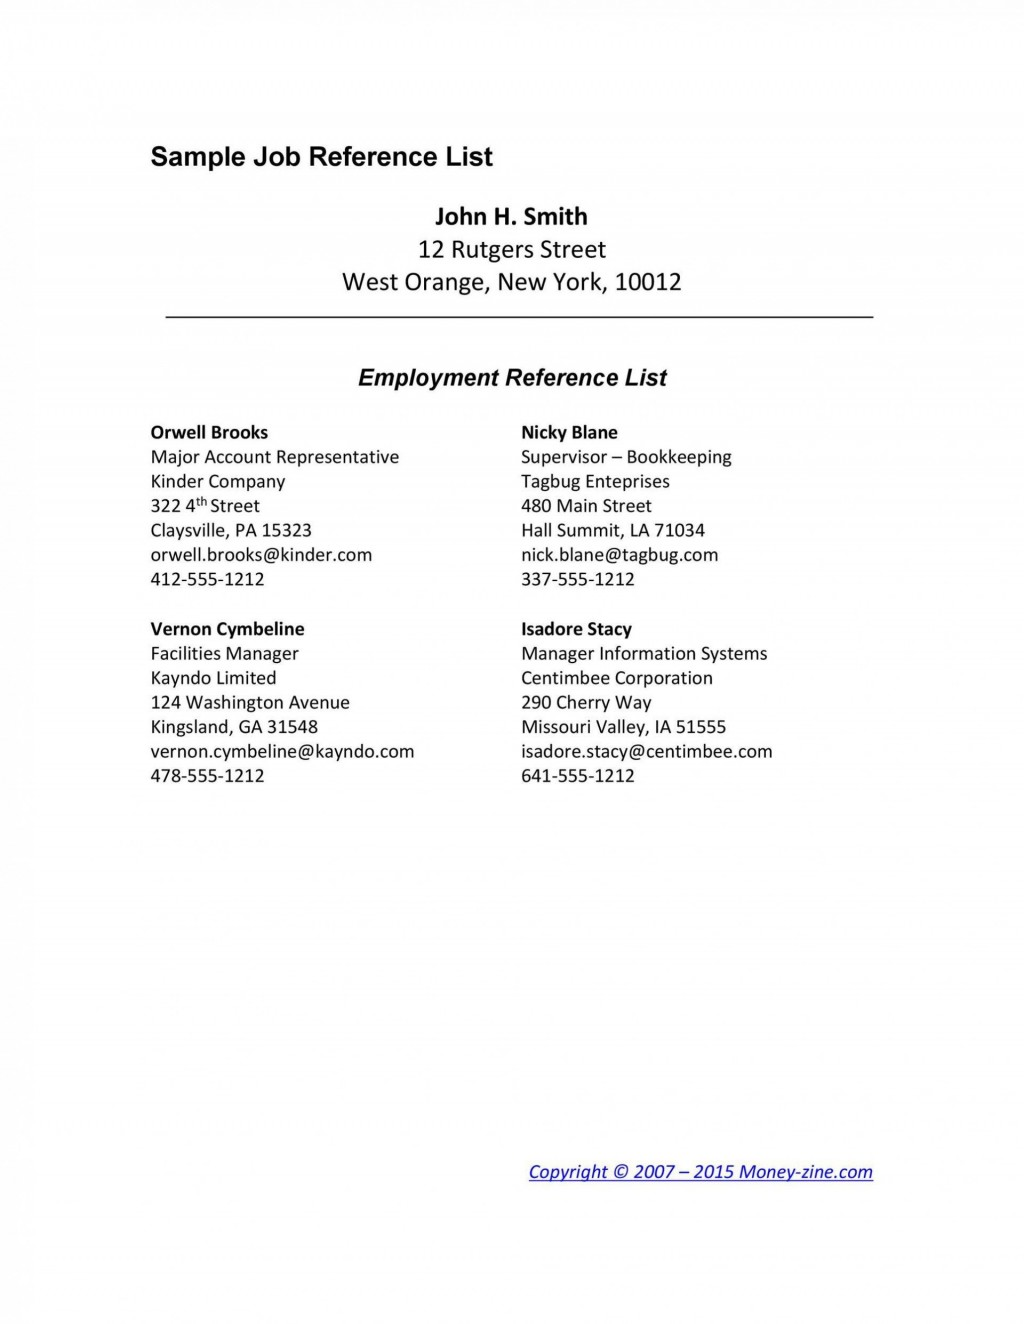 009 Stunning Resume Reference List Template Microsoft Word Concept Large